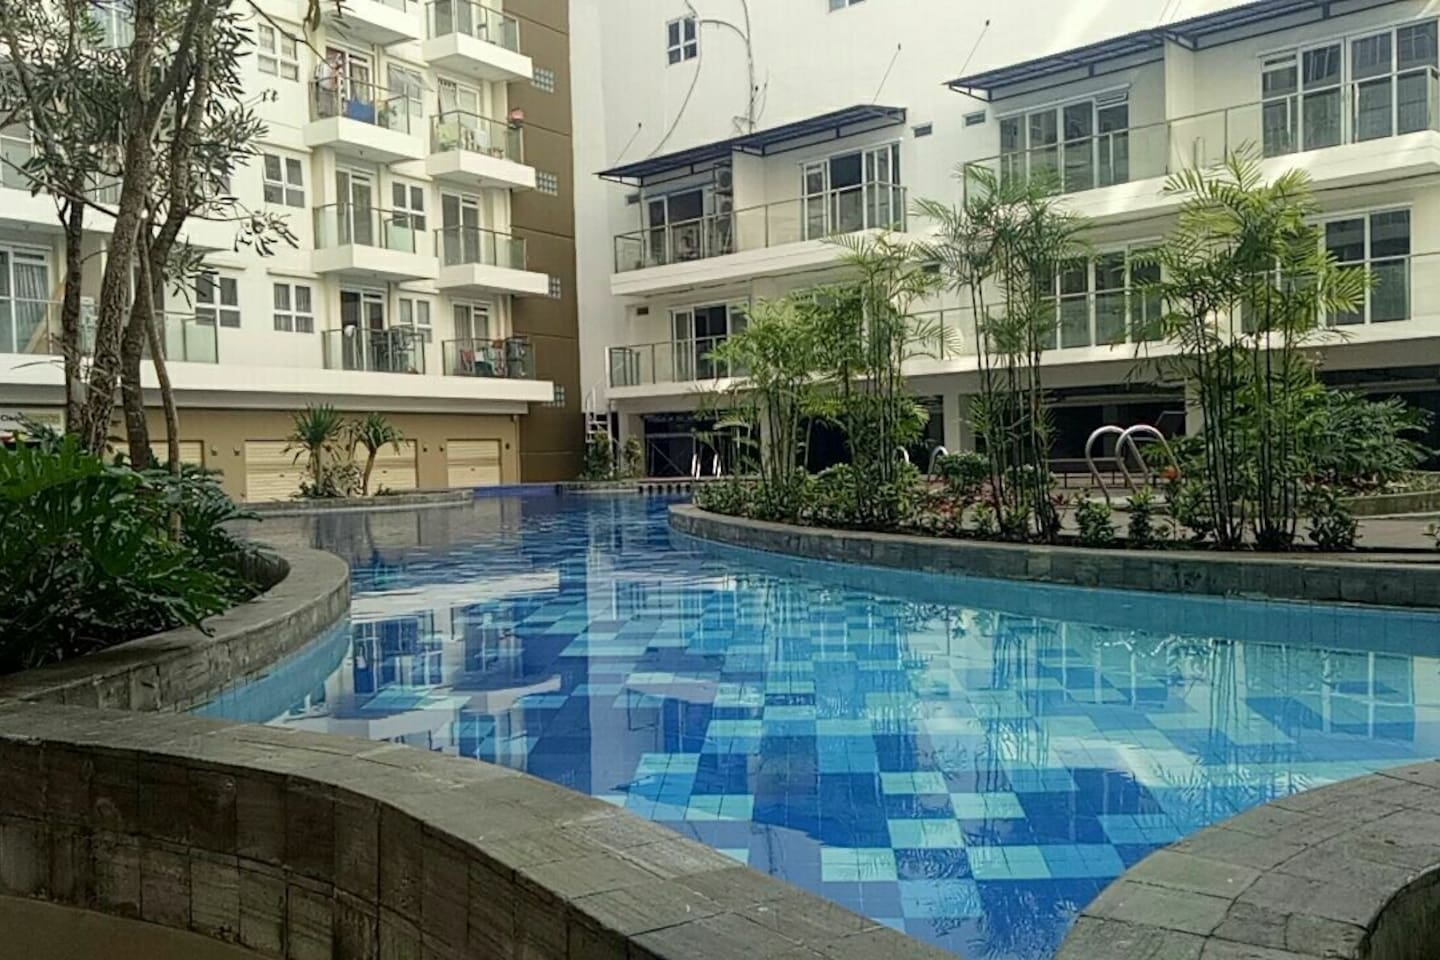 The Apartment pool, in the middle of the apartment area. Another one located below the room